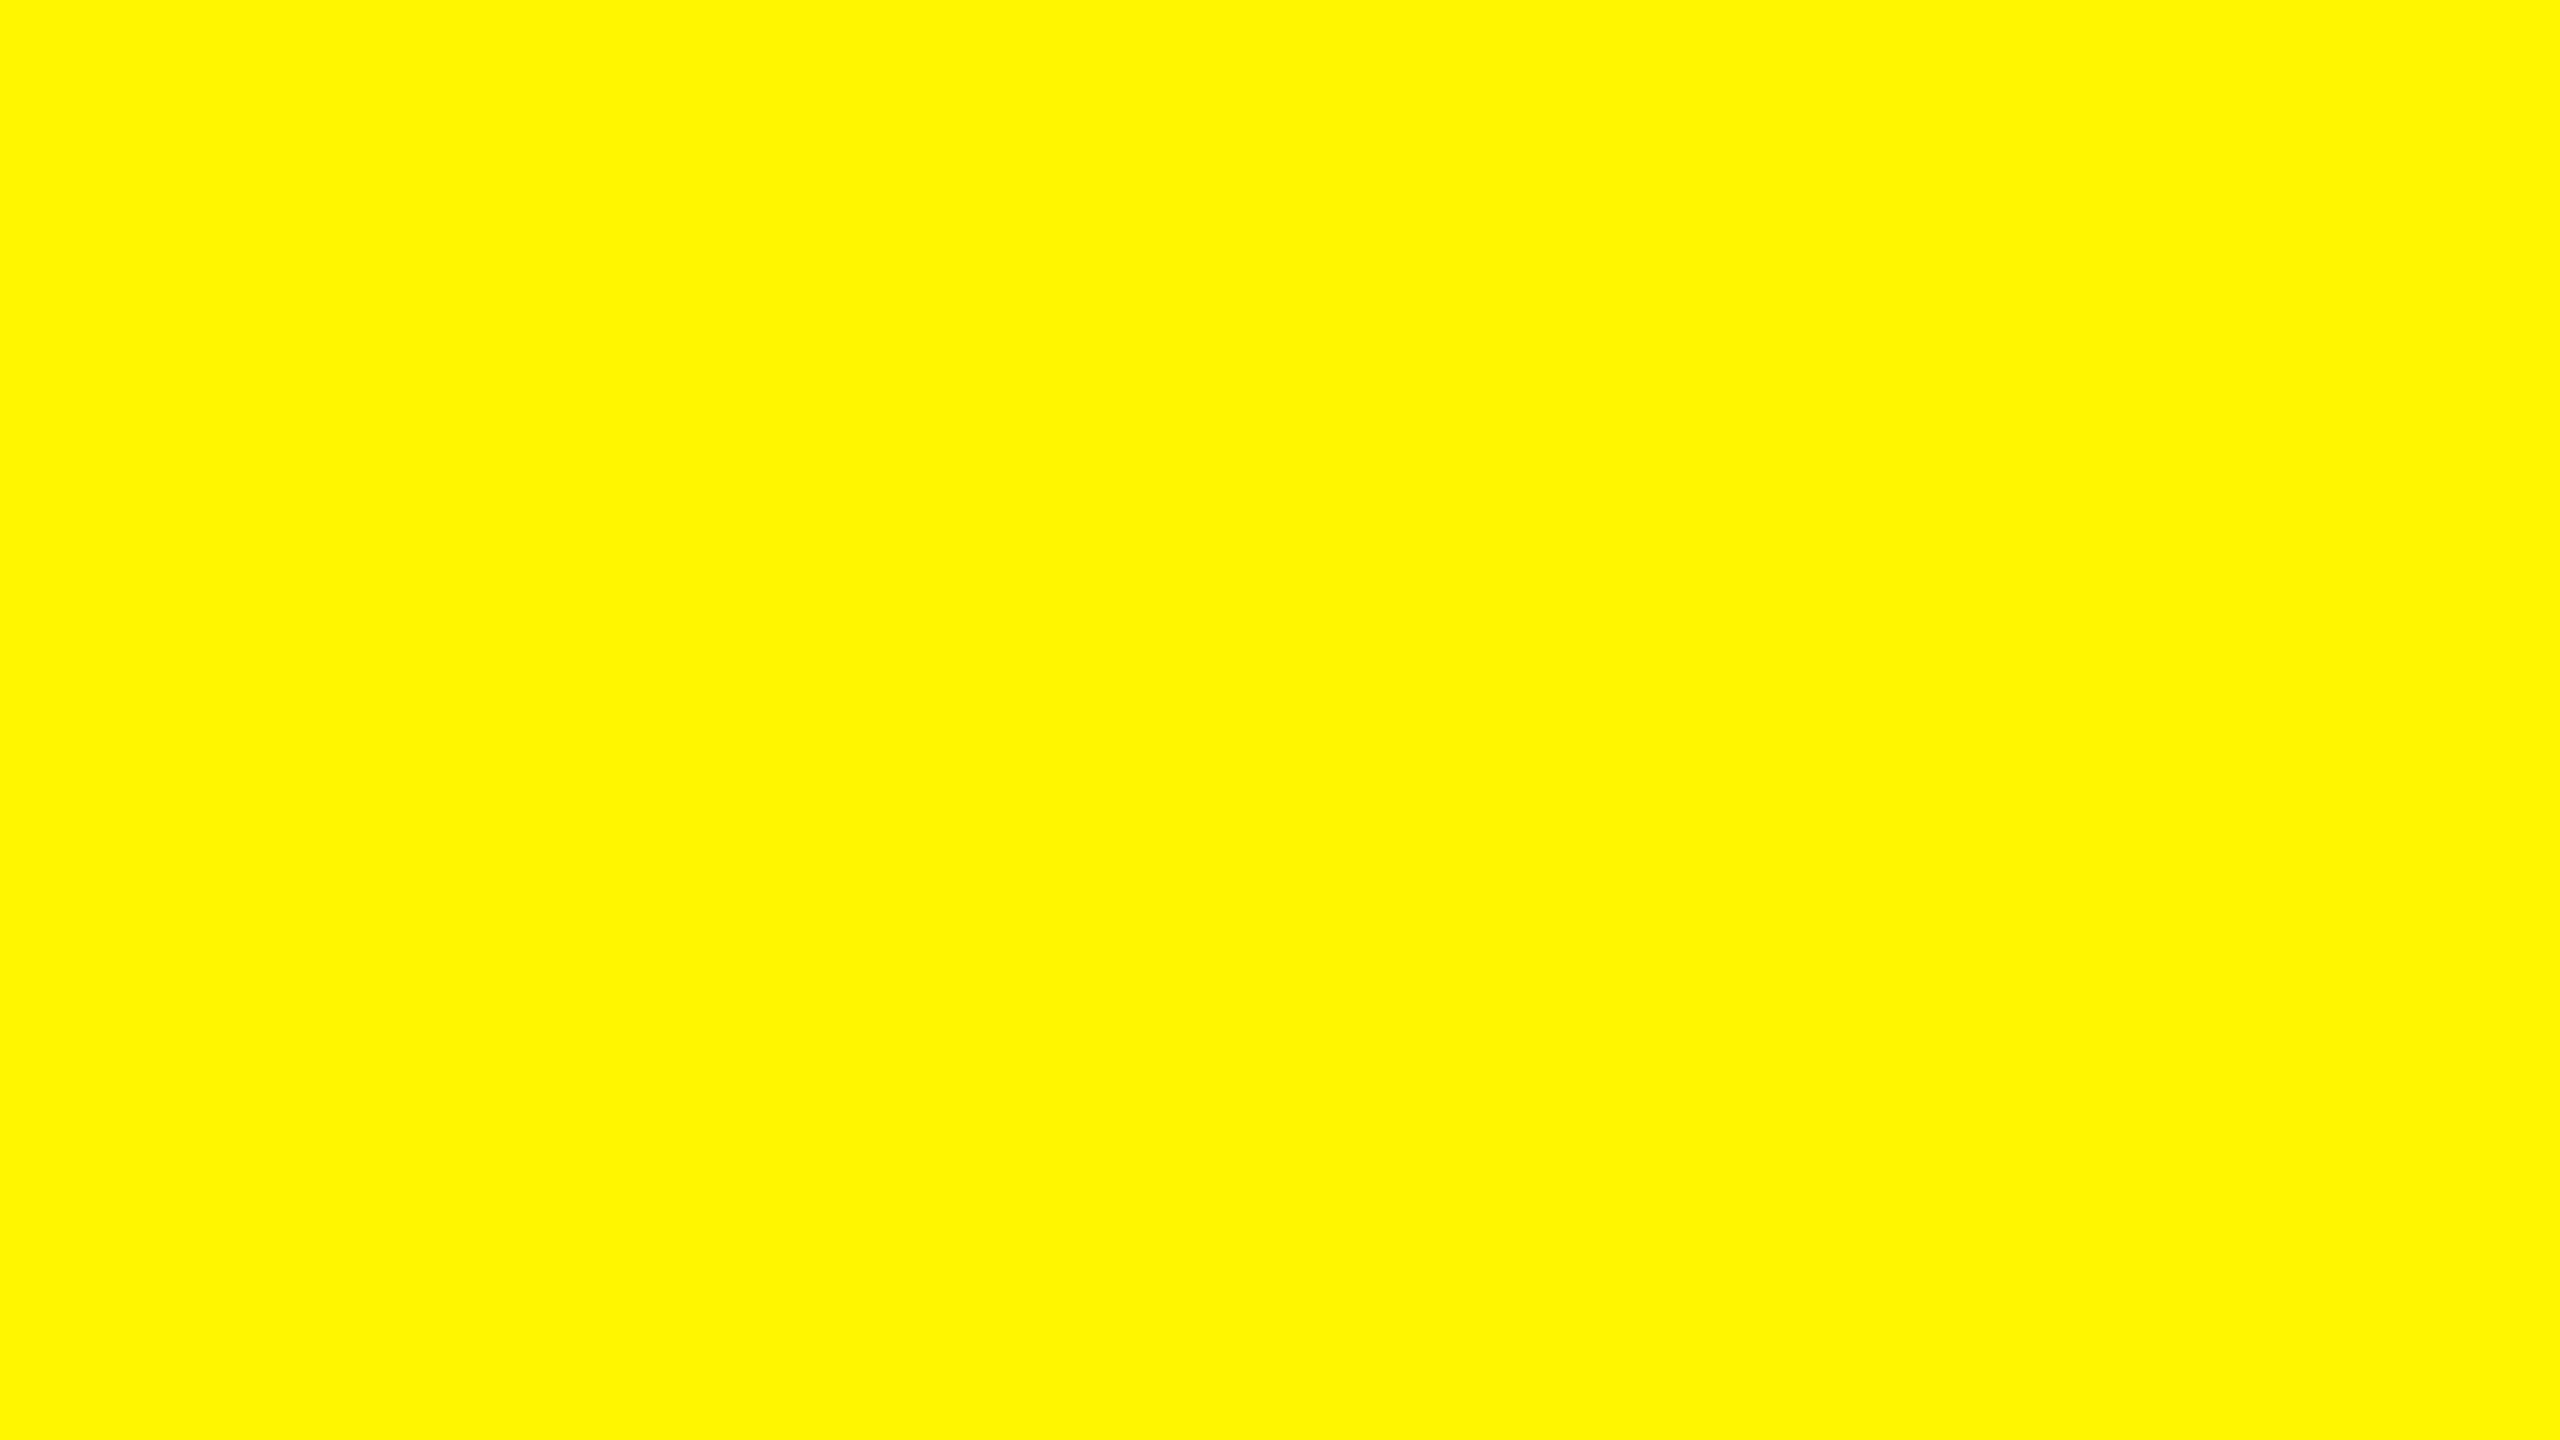 2560x1440 Cadmium Yellow Solid Color Background